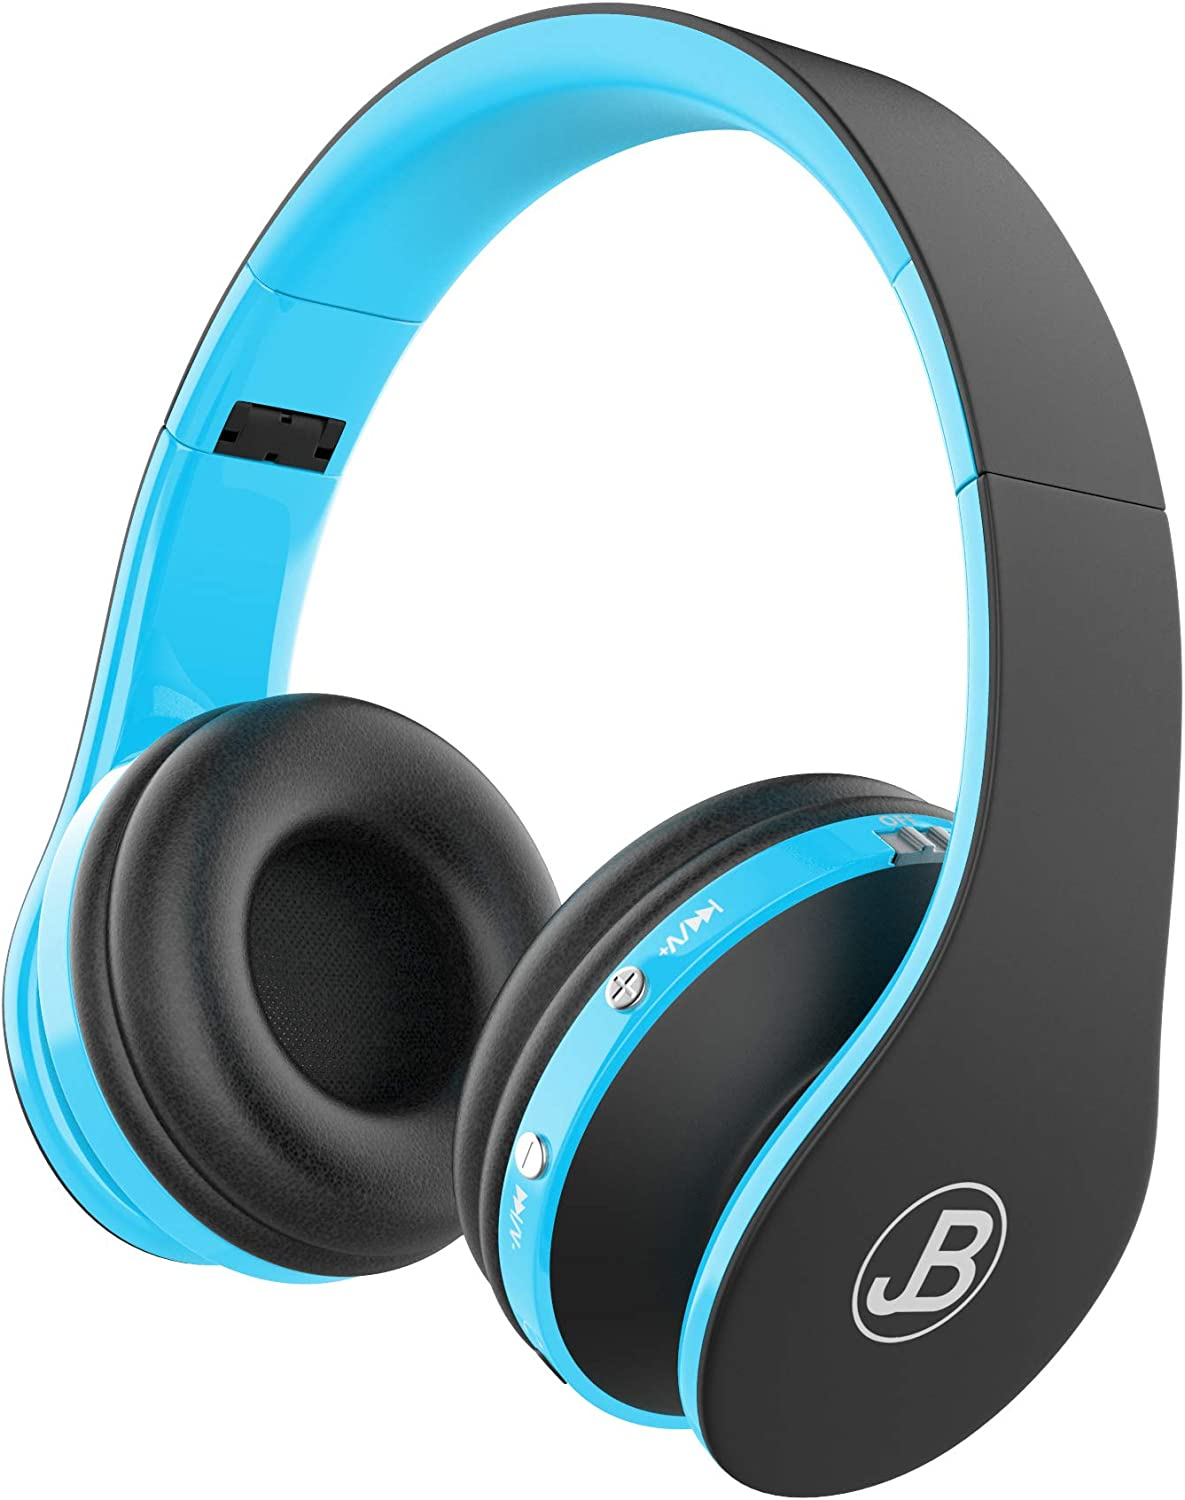 JB Wireless Over Ear Headphones, Wireless Technology, Foldable Soft Memory Earmuffs With Built in Mic, Automatic Connection To Cell Phone, TV PC, Blue